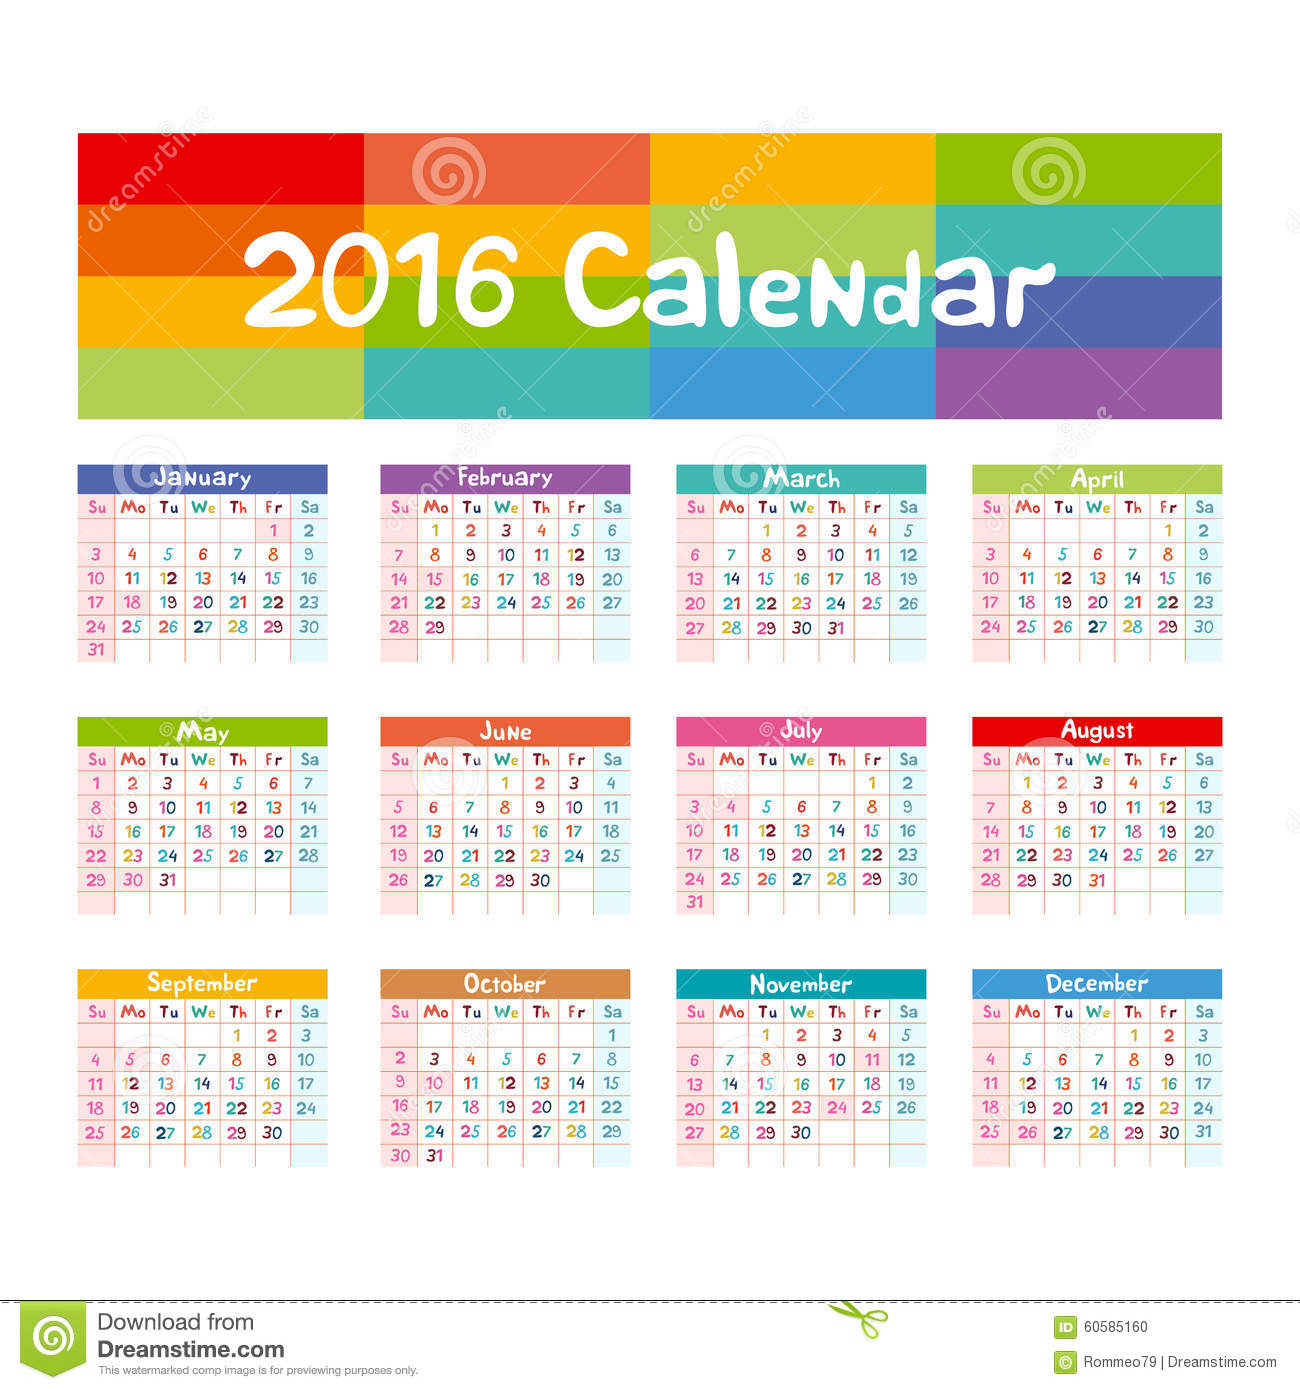 2016 Calendar - Illustration Vector Kids Hand Made Stock Vector ...